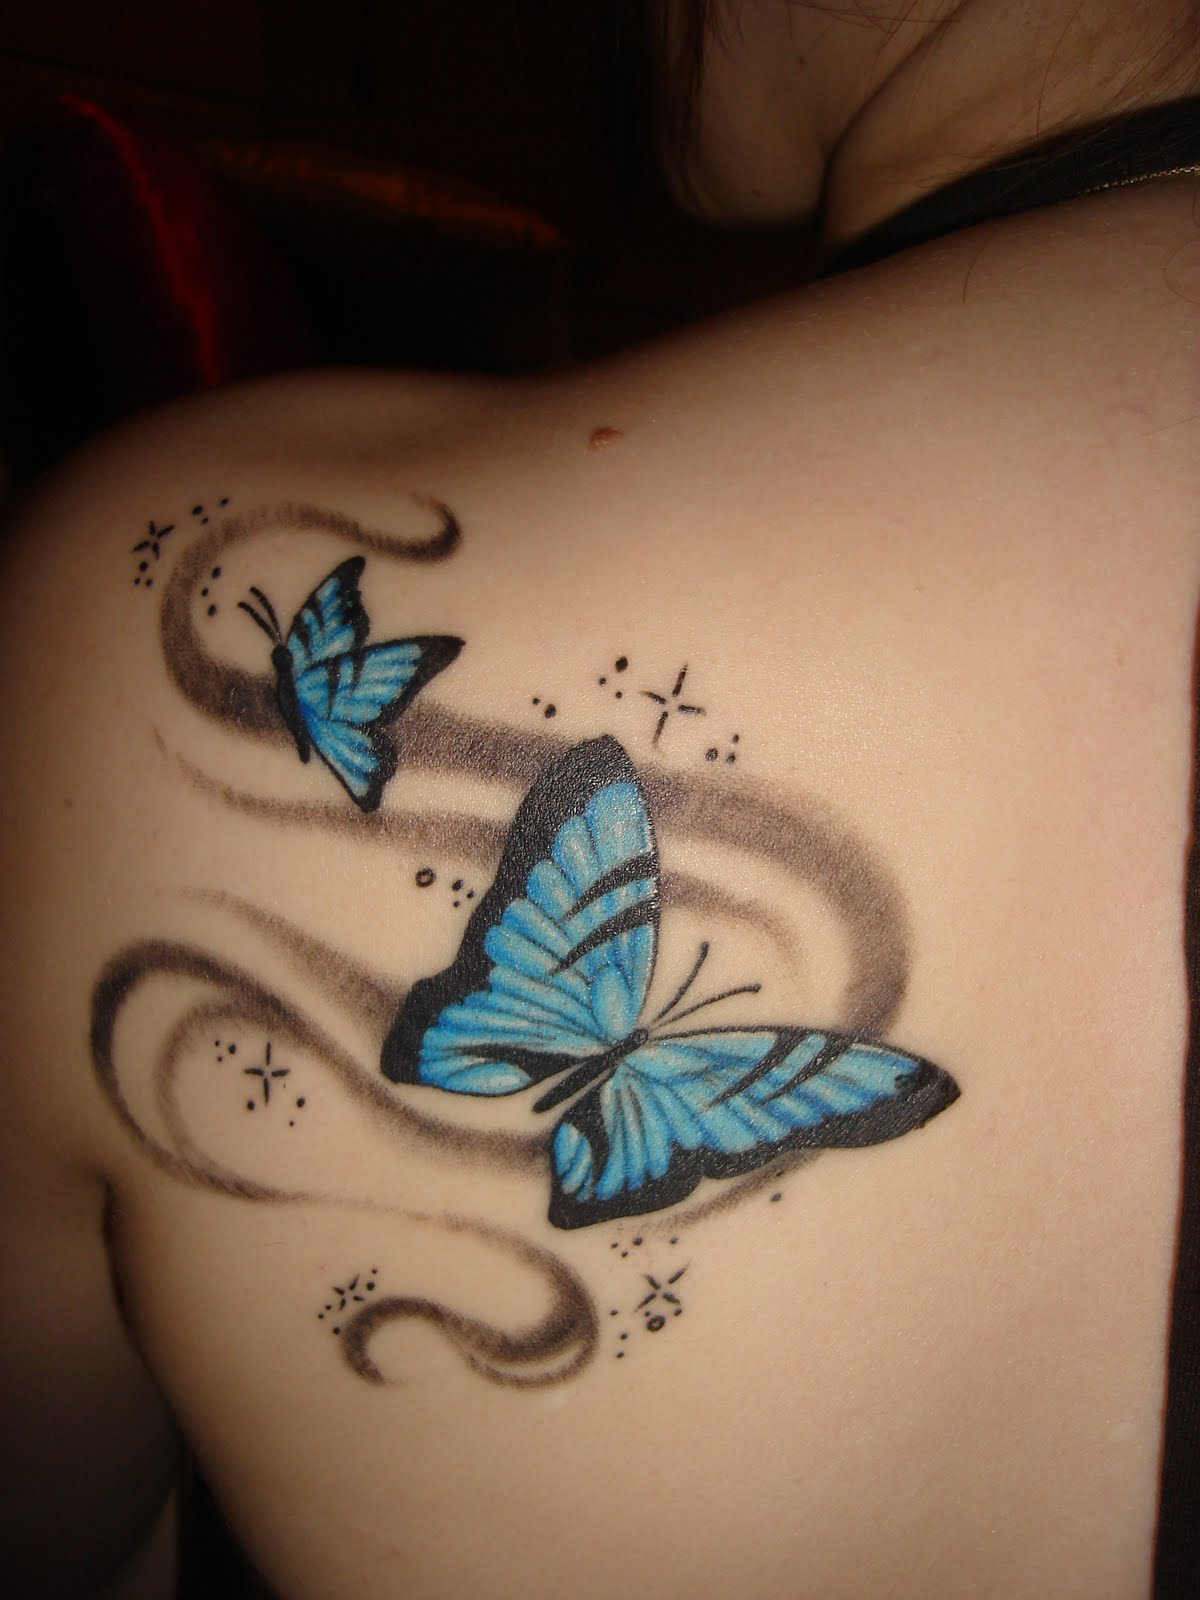 86 Stunning and Lovely Butterfly Tattoos and Designs |Tribal Butterfly Tattoos On Hip